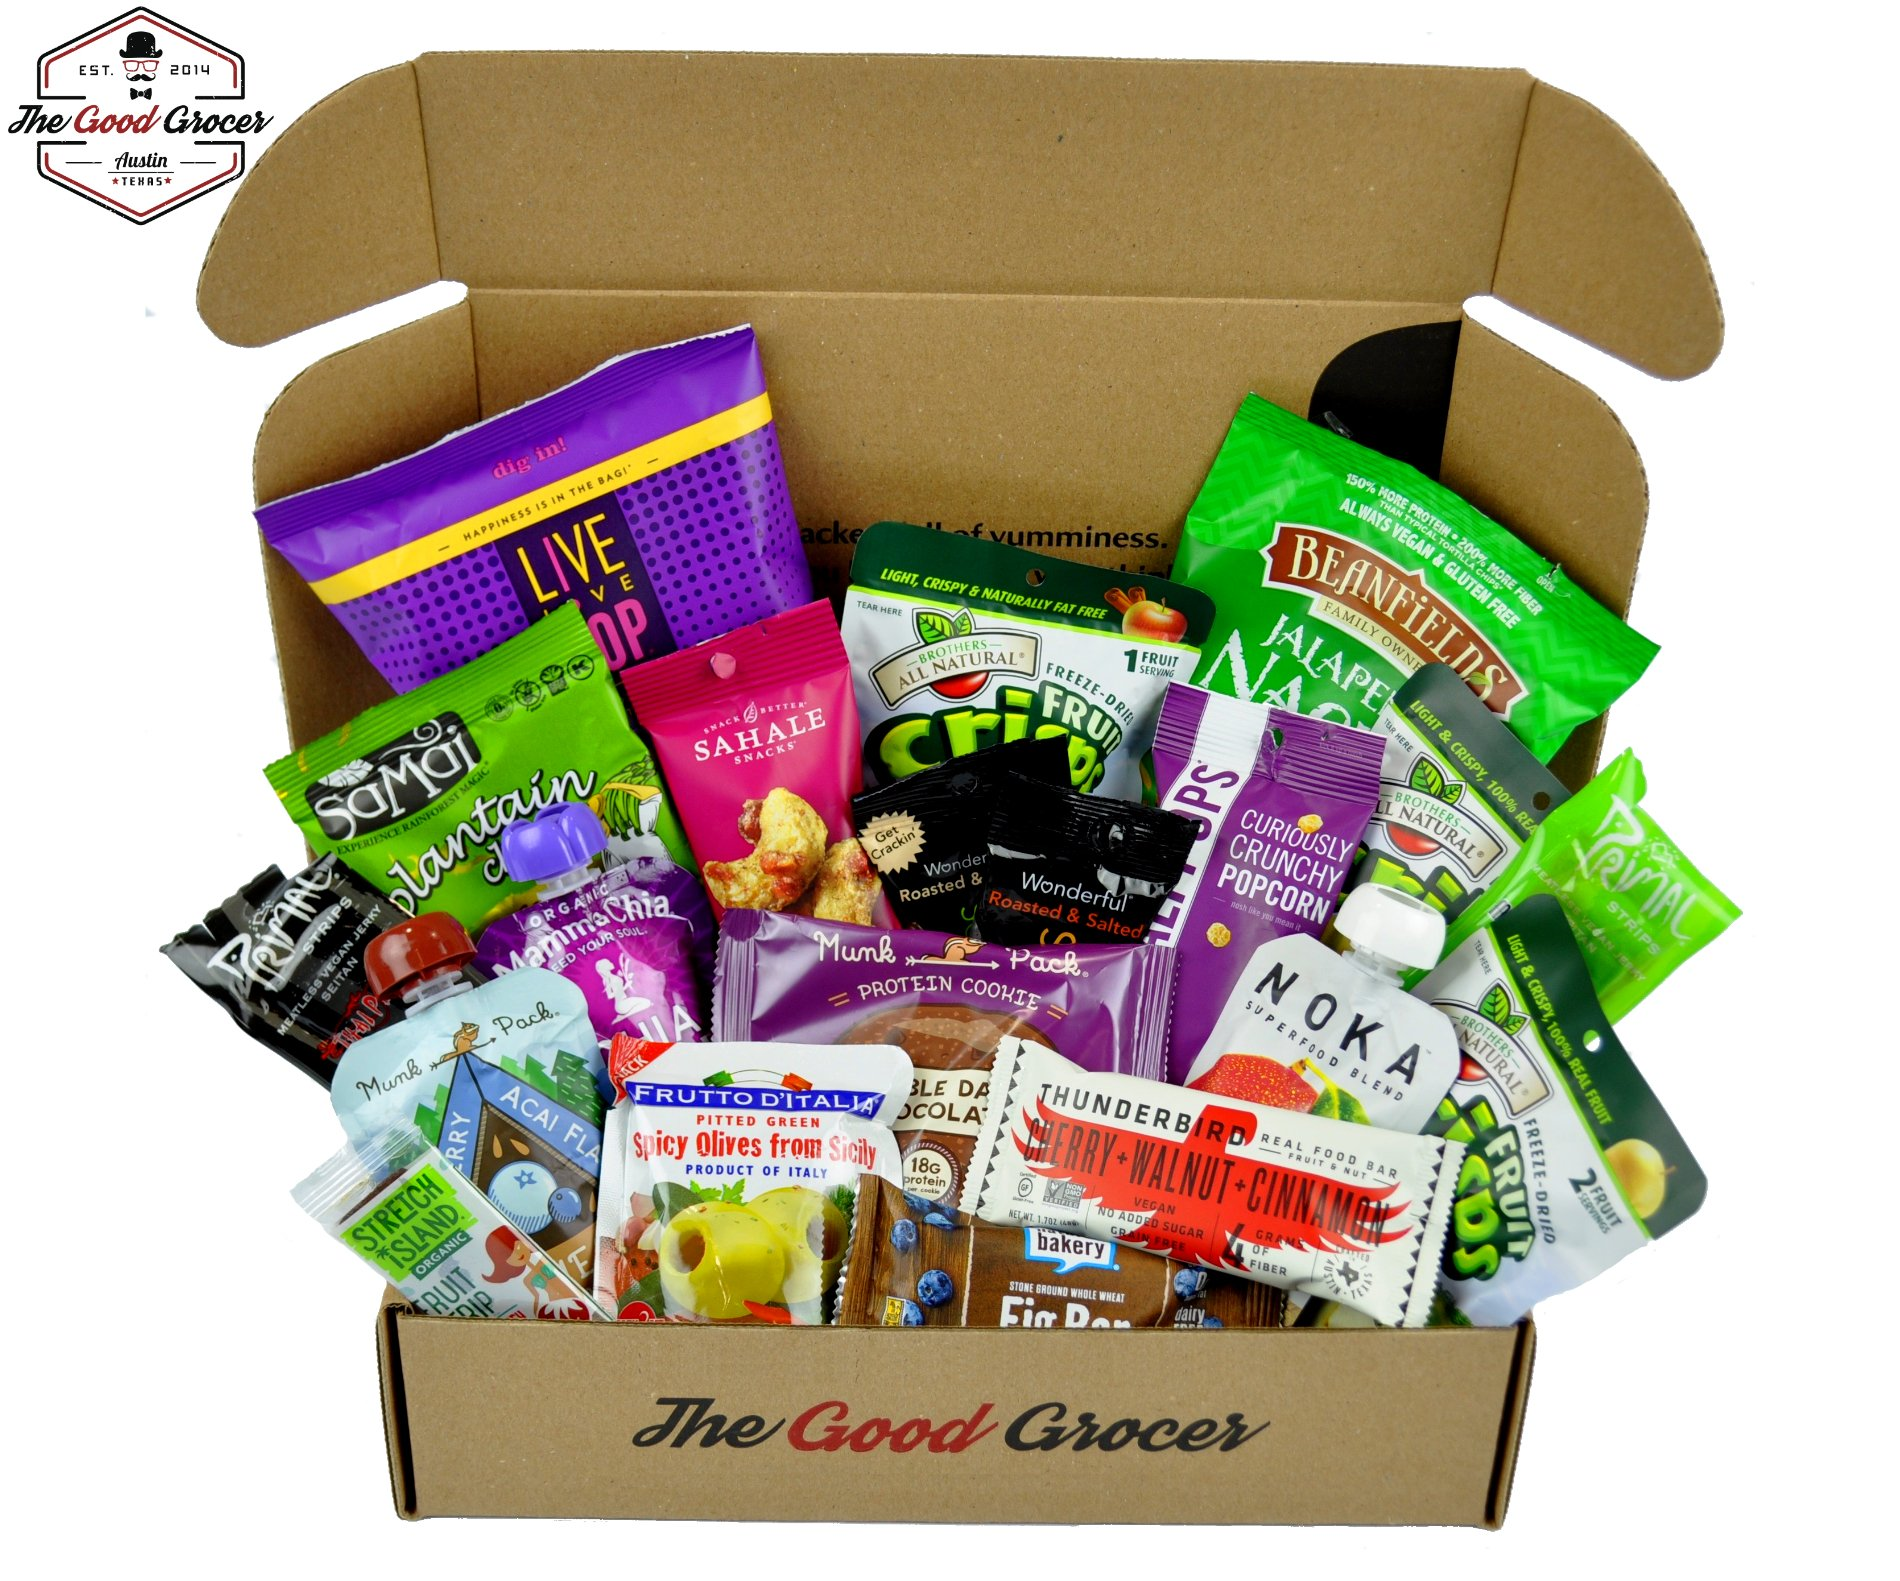 Premium VEGAN Snacks Care Package: Non-GMO, Vegan, Protein Bars, Cookies, Crispy Fruit, Vegan Jerky, Nuts, Trail Mix, Healthy Vegan Gift Box, Office Snack Variety Pack, College Student Care Package